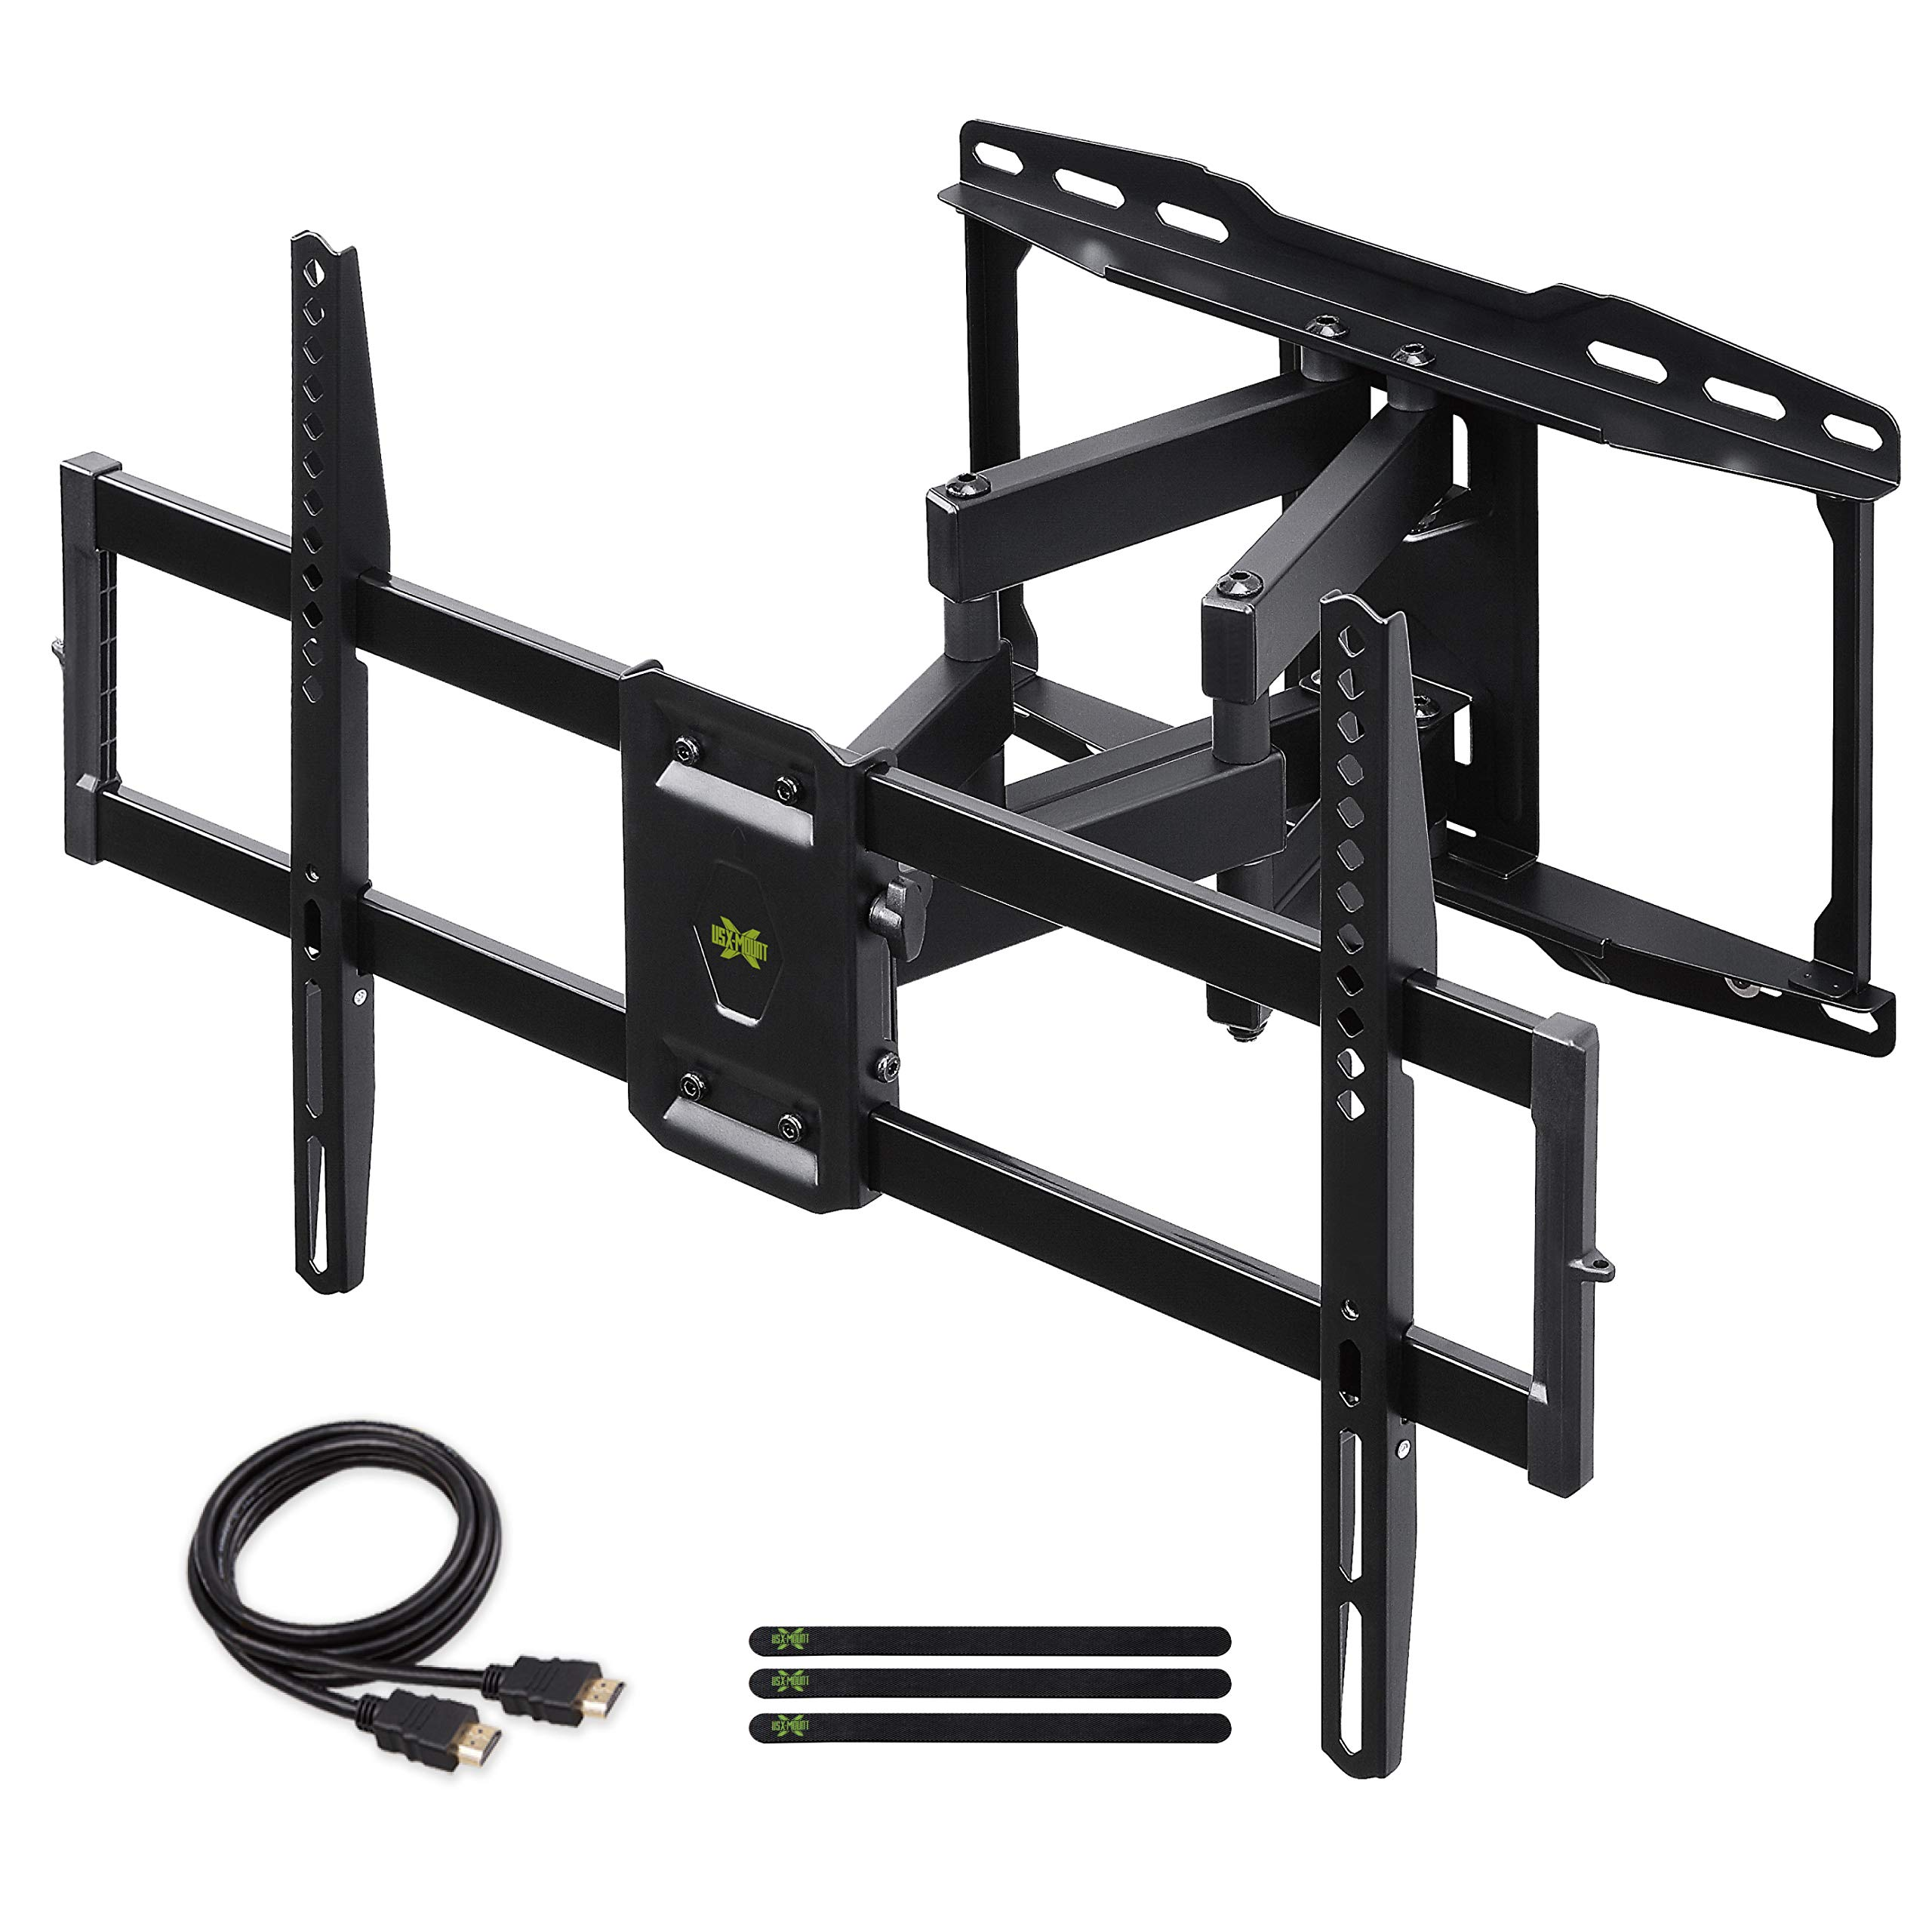 Full Motion TV Wall Mount Bracket Dual Swivel Articulating Tilt 6 Arms for Most 37-75 inch Flat Screen, LED, 4K TVs, with Max VESA 600x400mm and Fits 12'' 16'' Studs by USX MOUNT